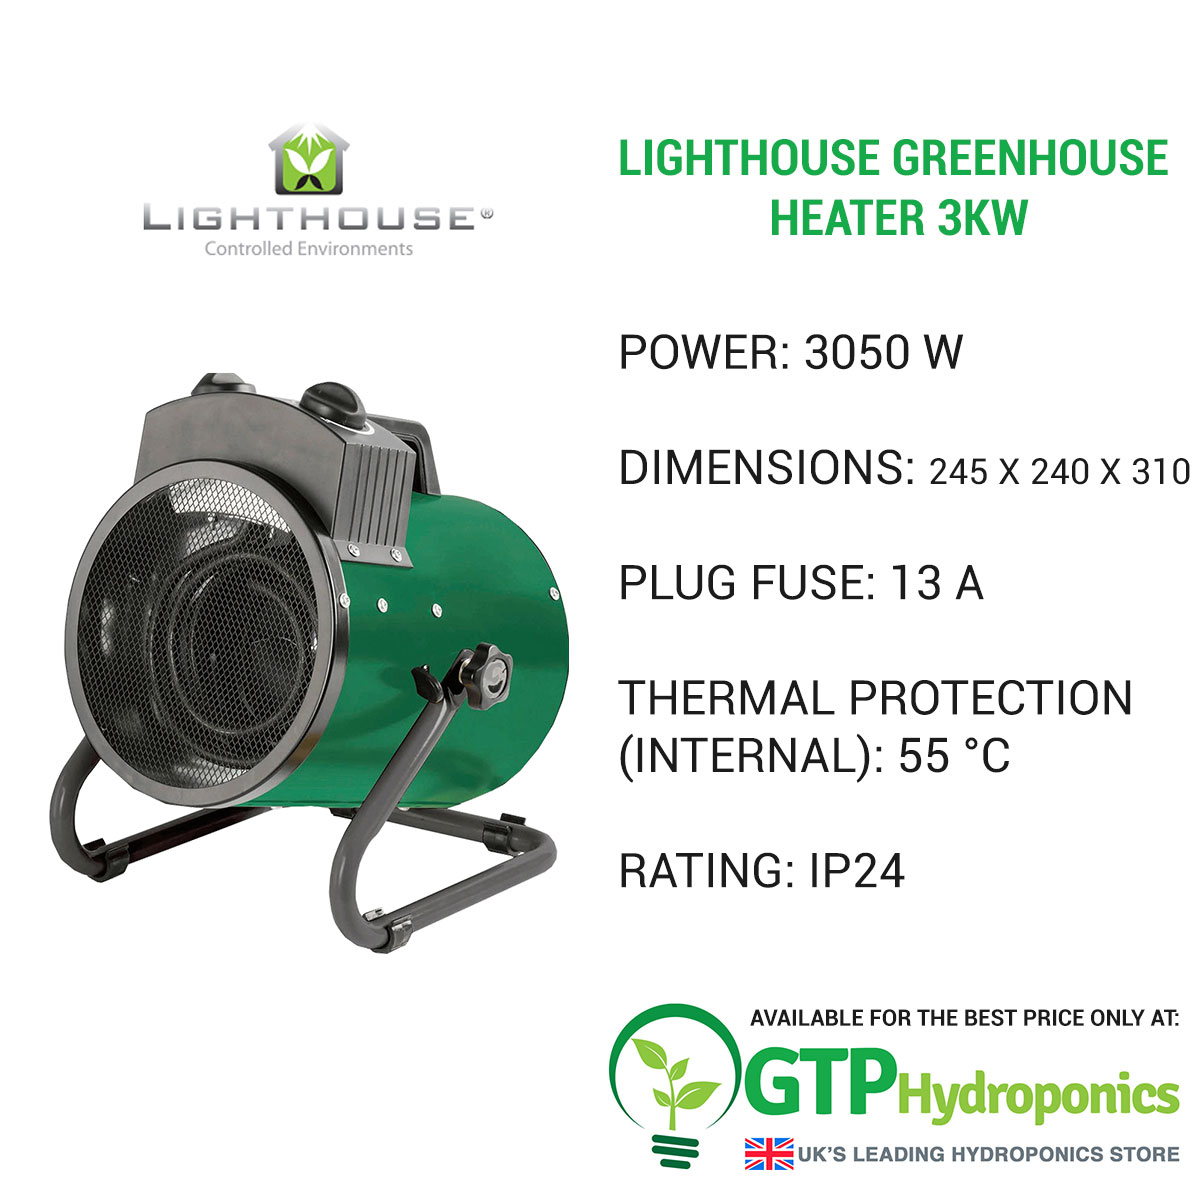 Lighthouse Greenhouse Heater 3kw overview